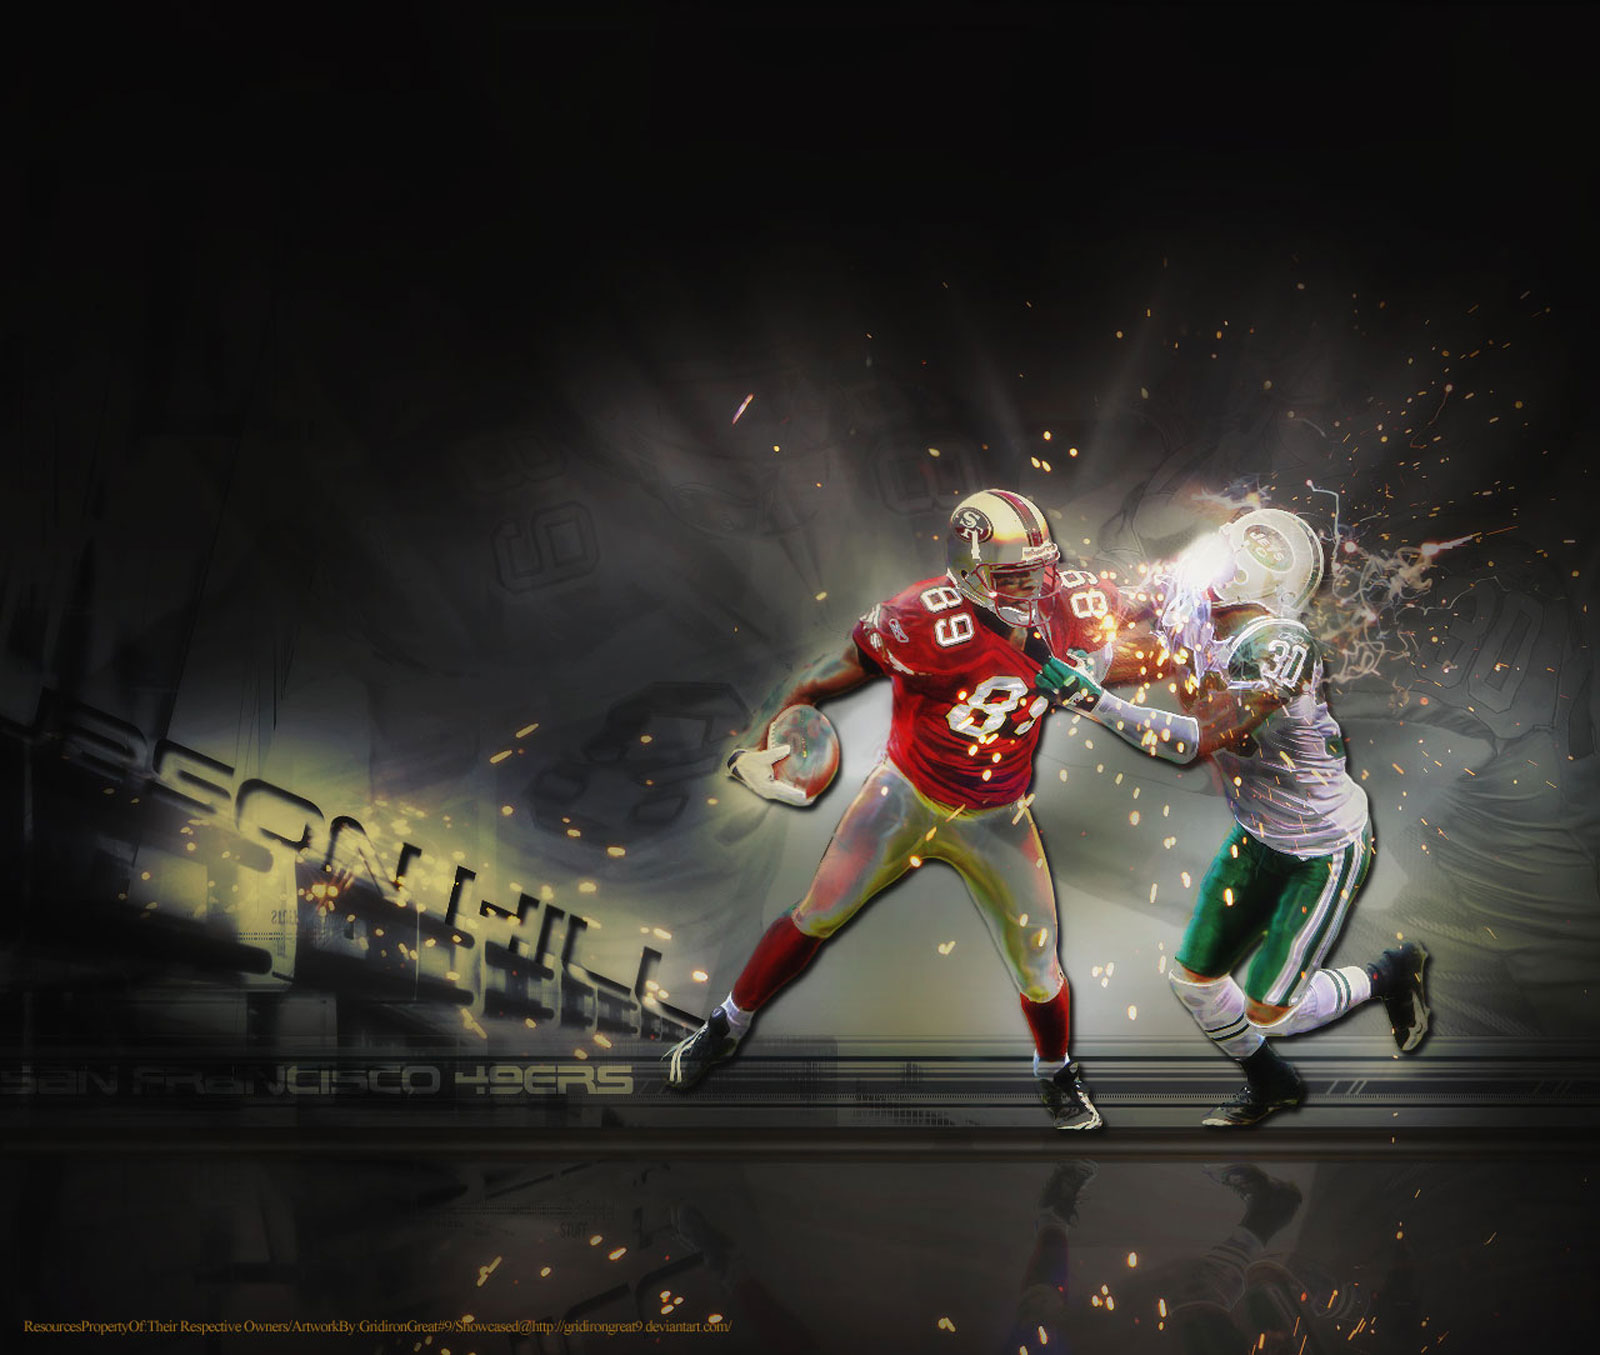 San Francisco 49ers HD background San Francisco 49ers wallpapers 1600x1355